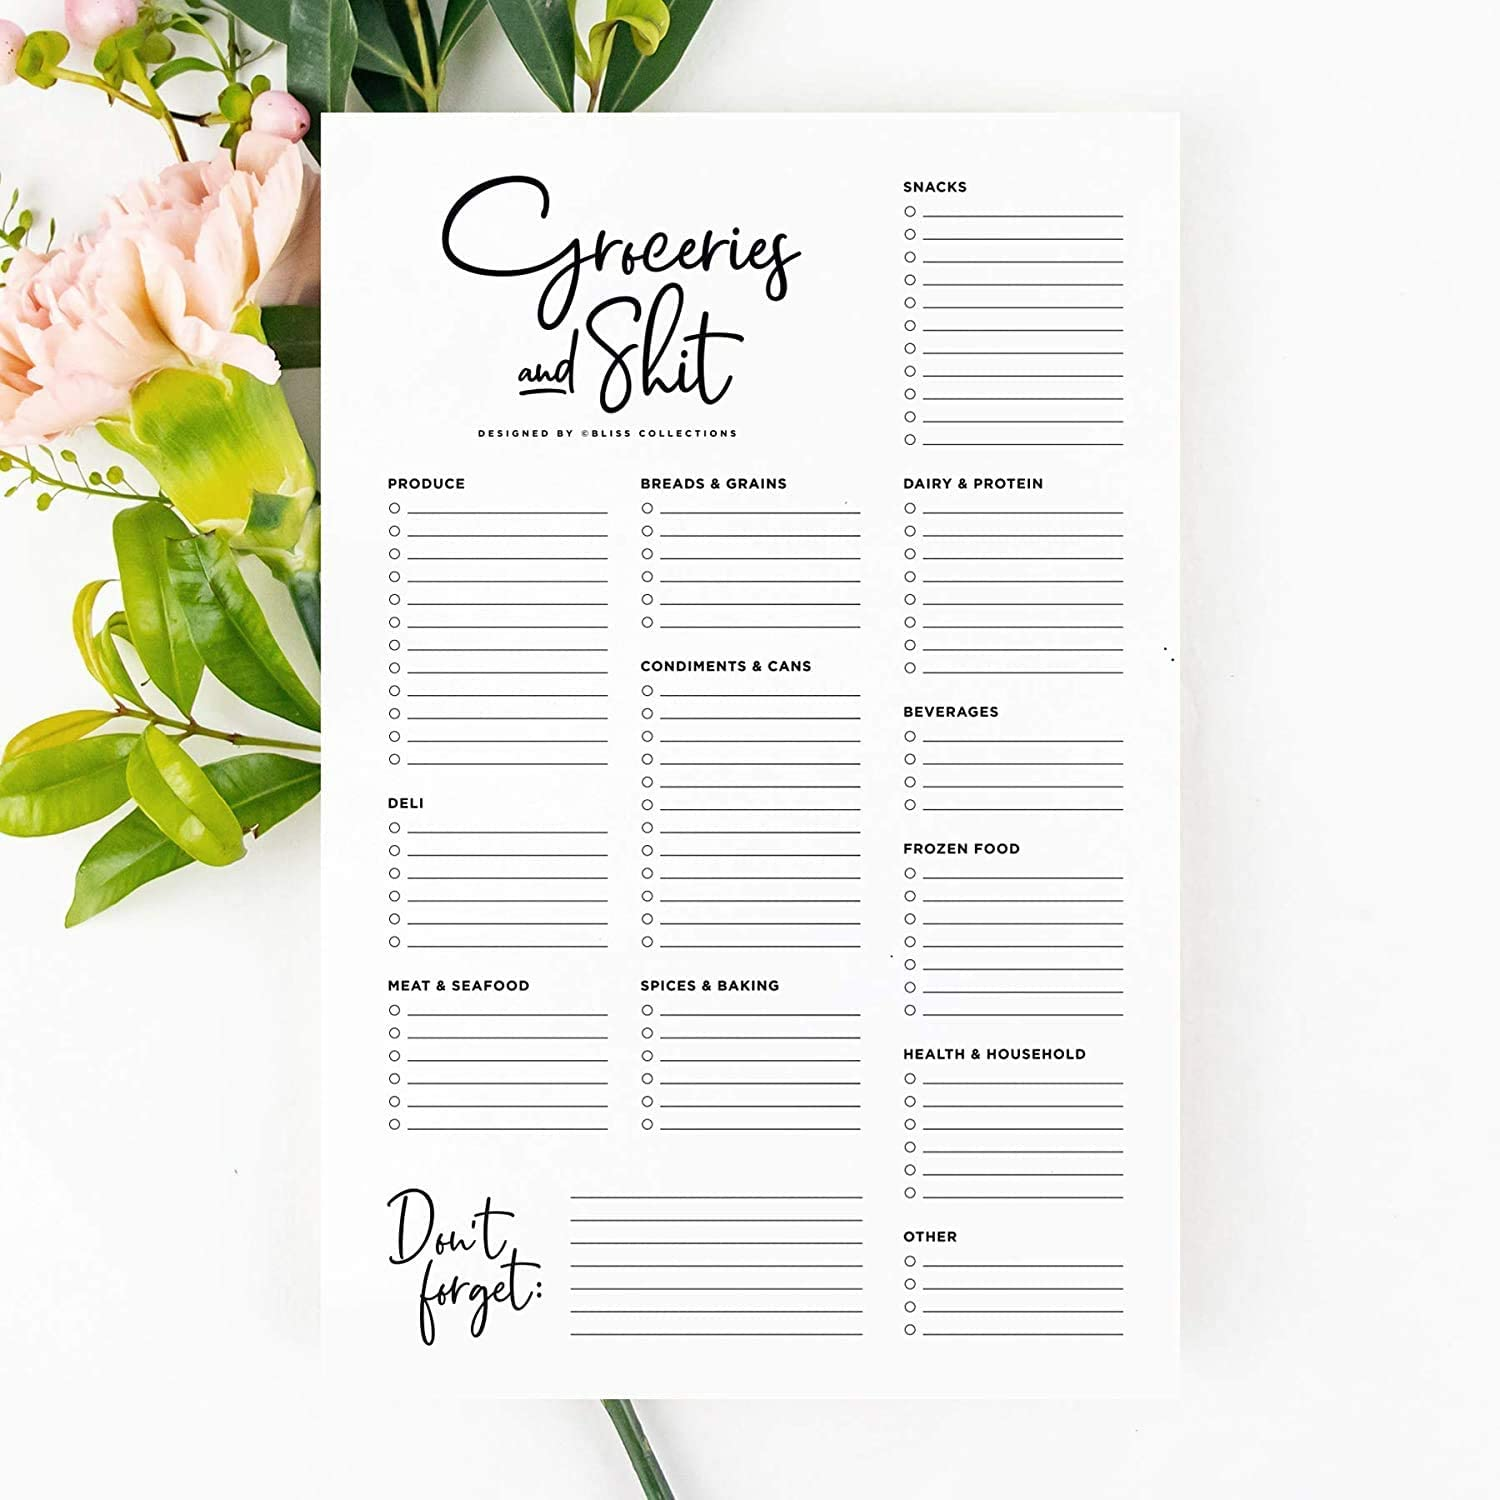 Bliss Collections to Do List Notepad with 50 Tear-Off Sheets - Groceries and Stuff 6 x 9 Organizer and Checklist for Organizing, Tracking Appointments, Reminders, Notes, Shopping, Grocery Lists